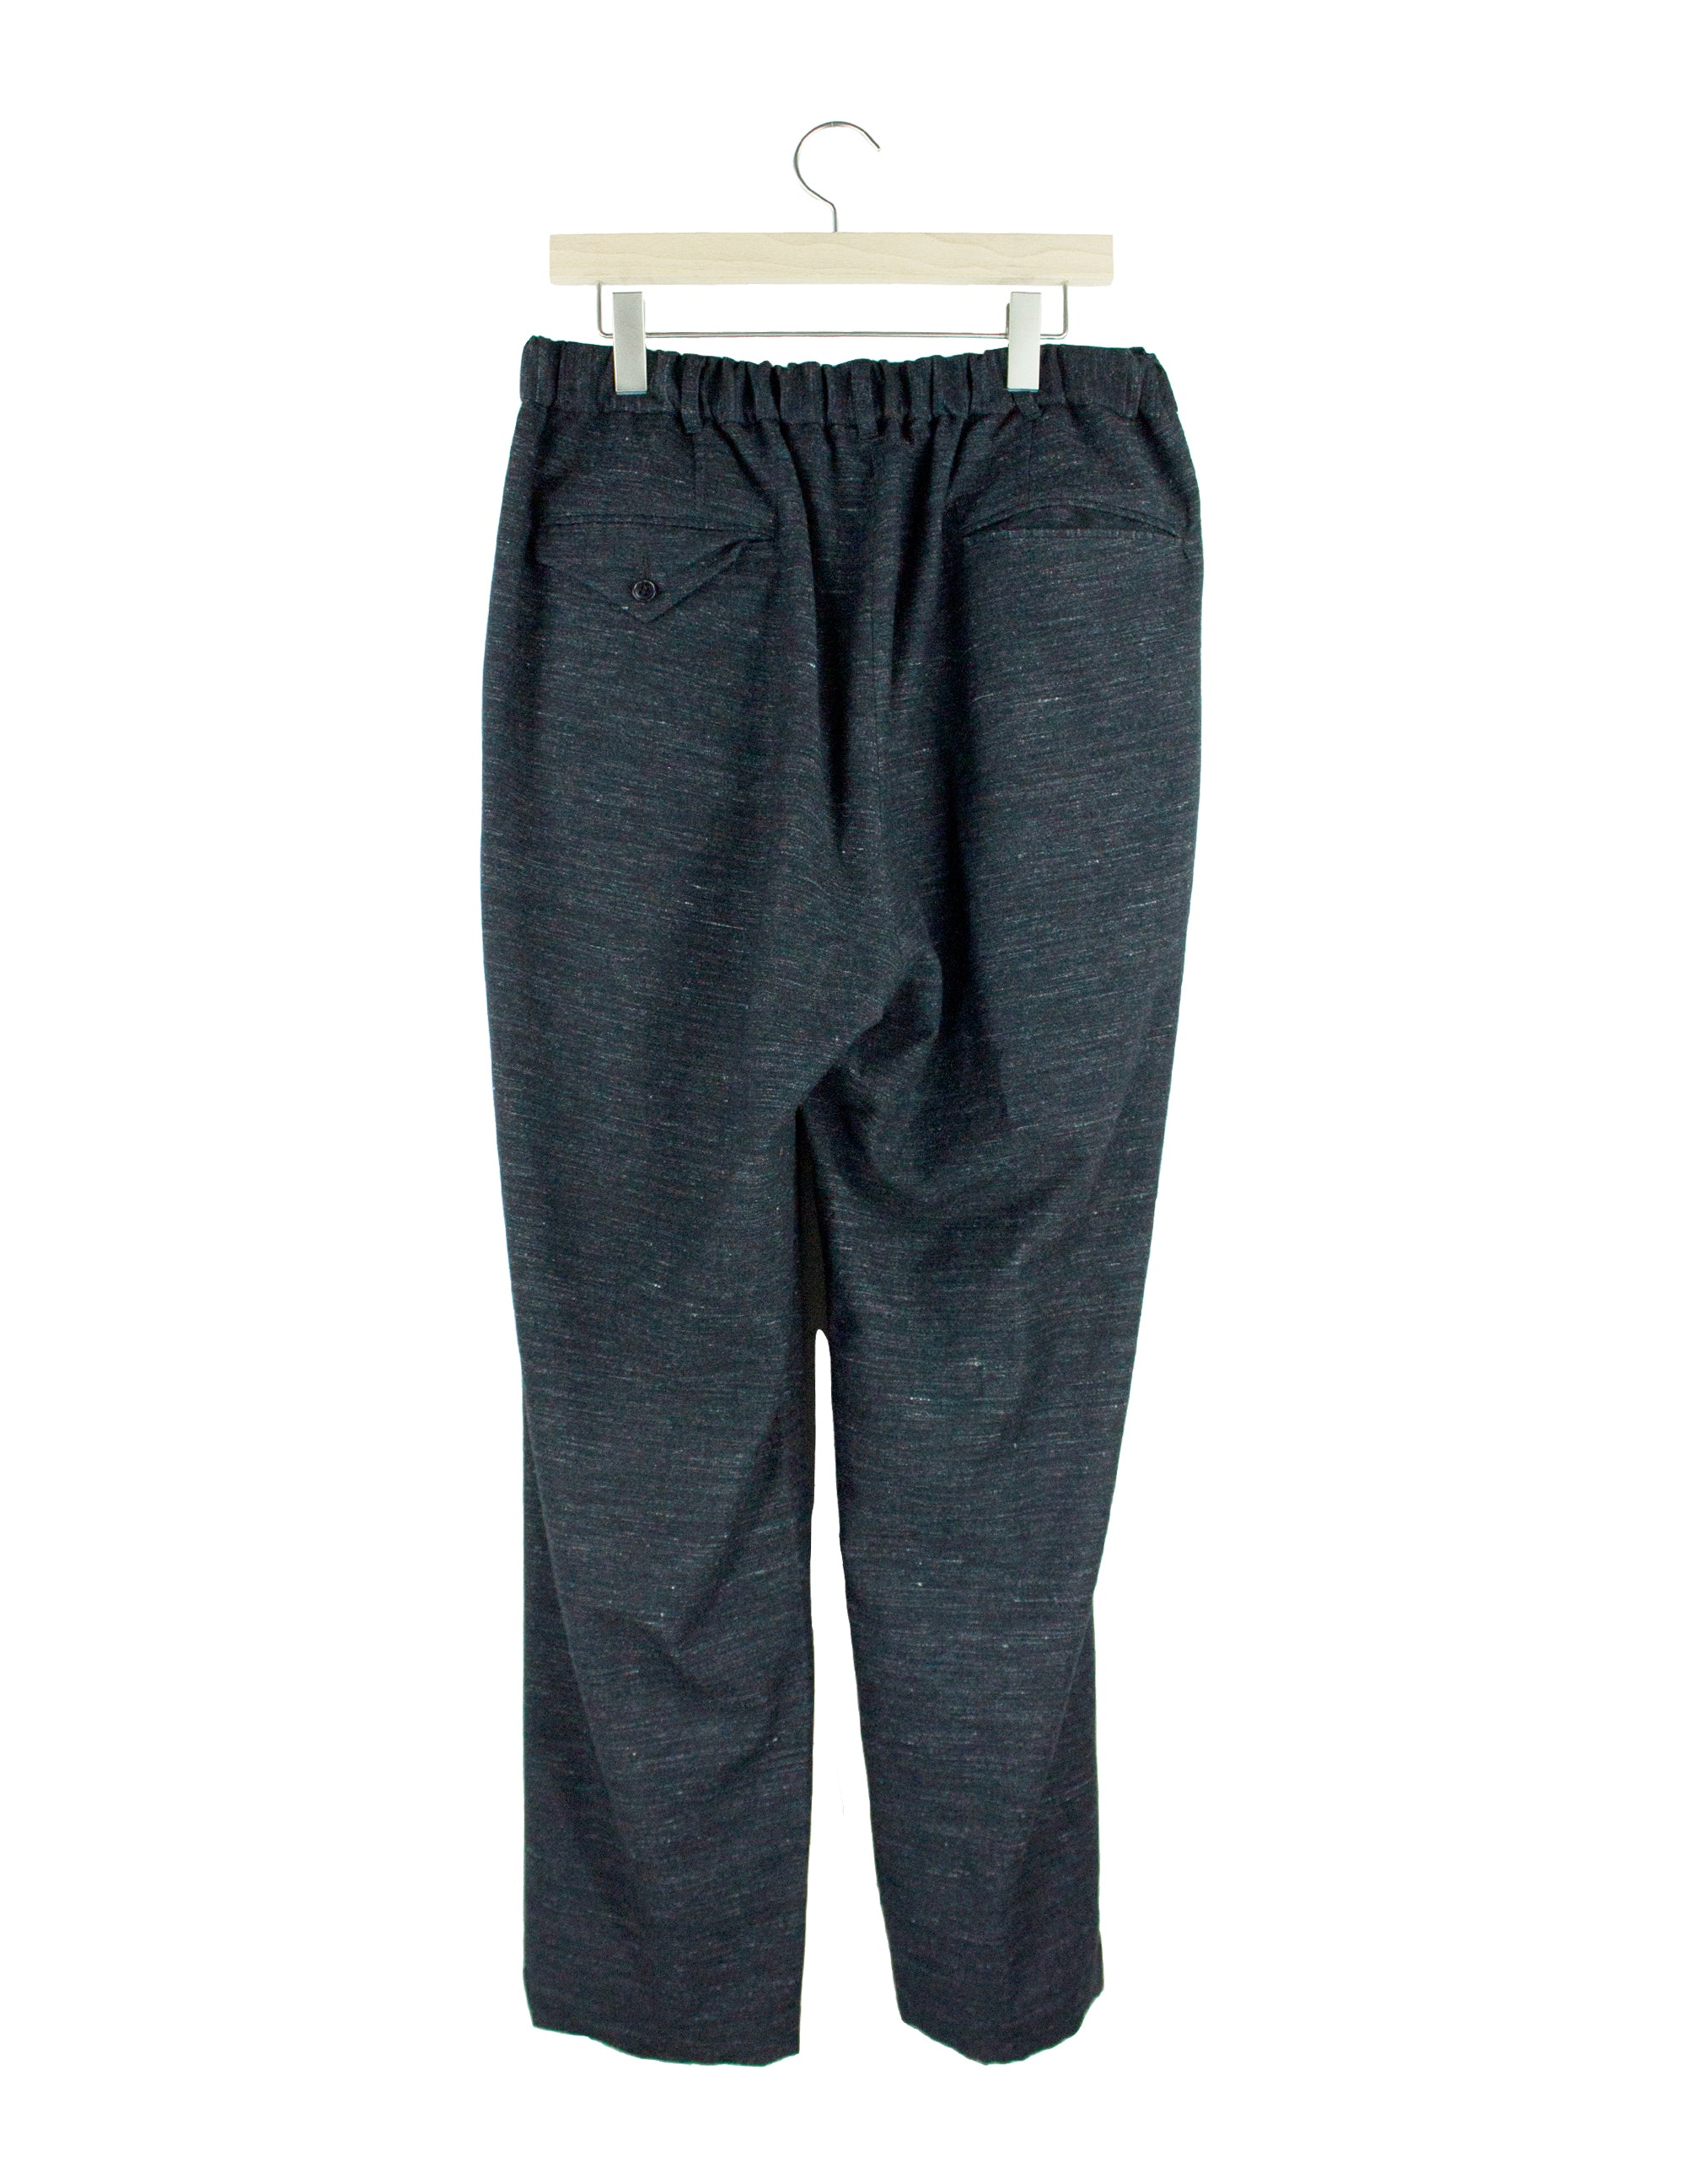 TWO TACK TAPERED PANTS